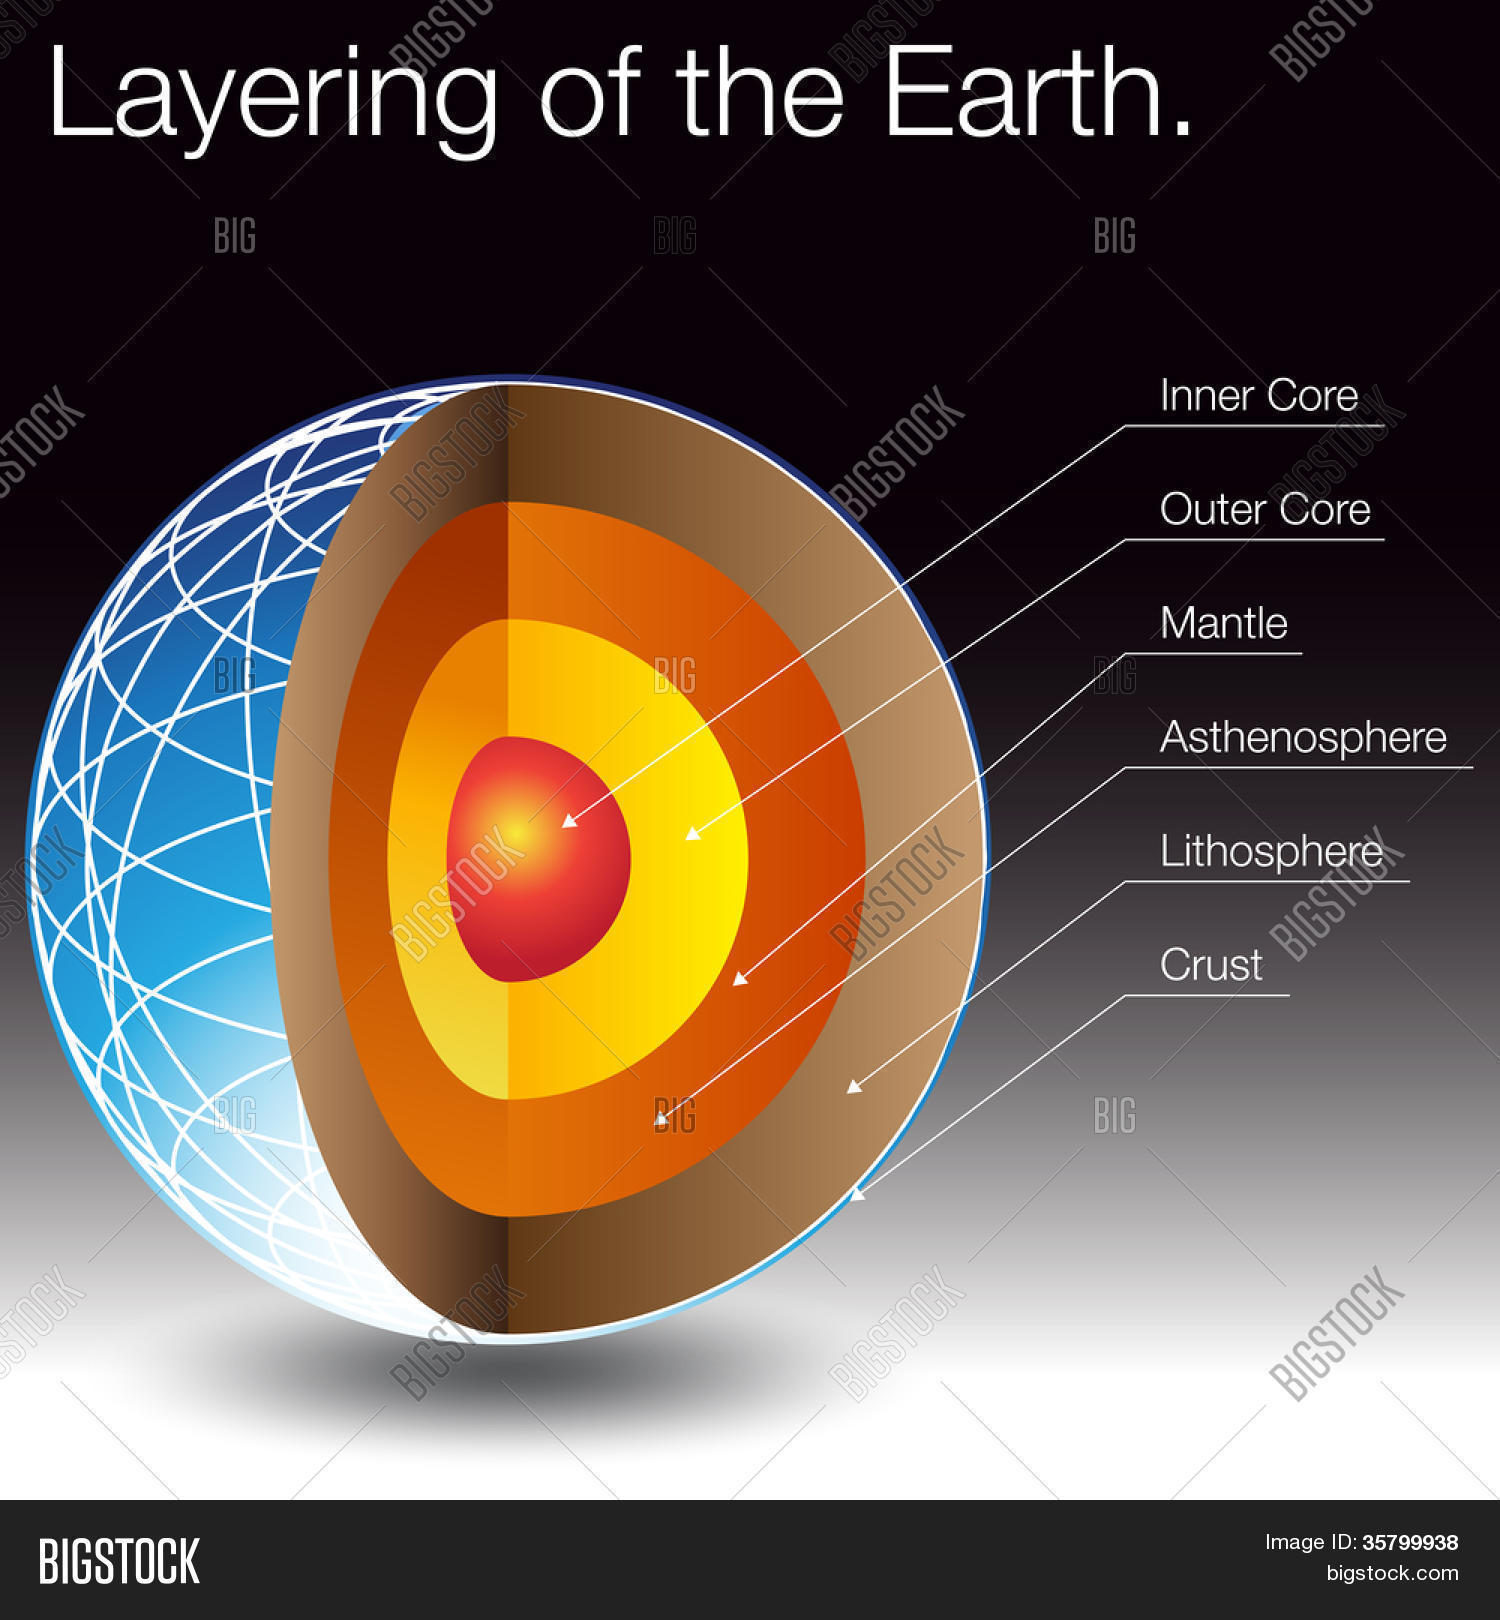 Image Layers Earth Image Amp Photo Free Trial